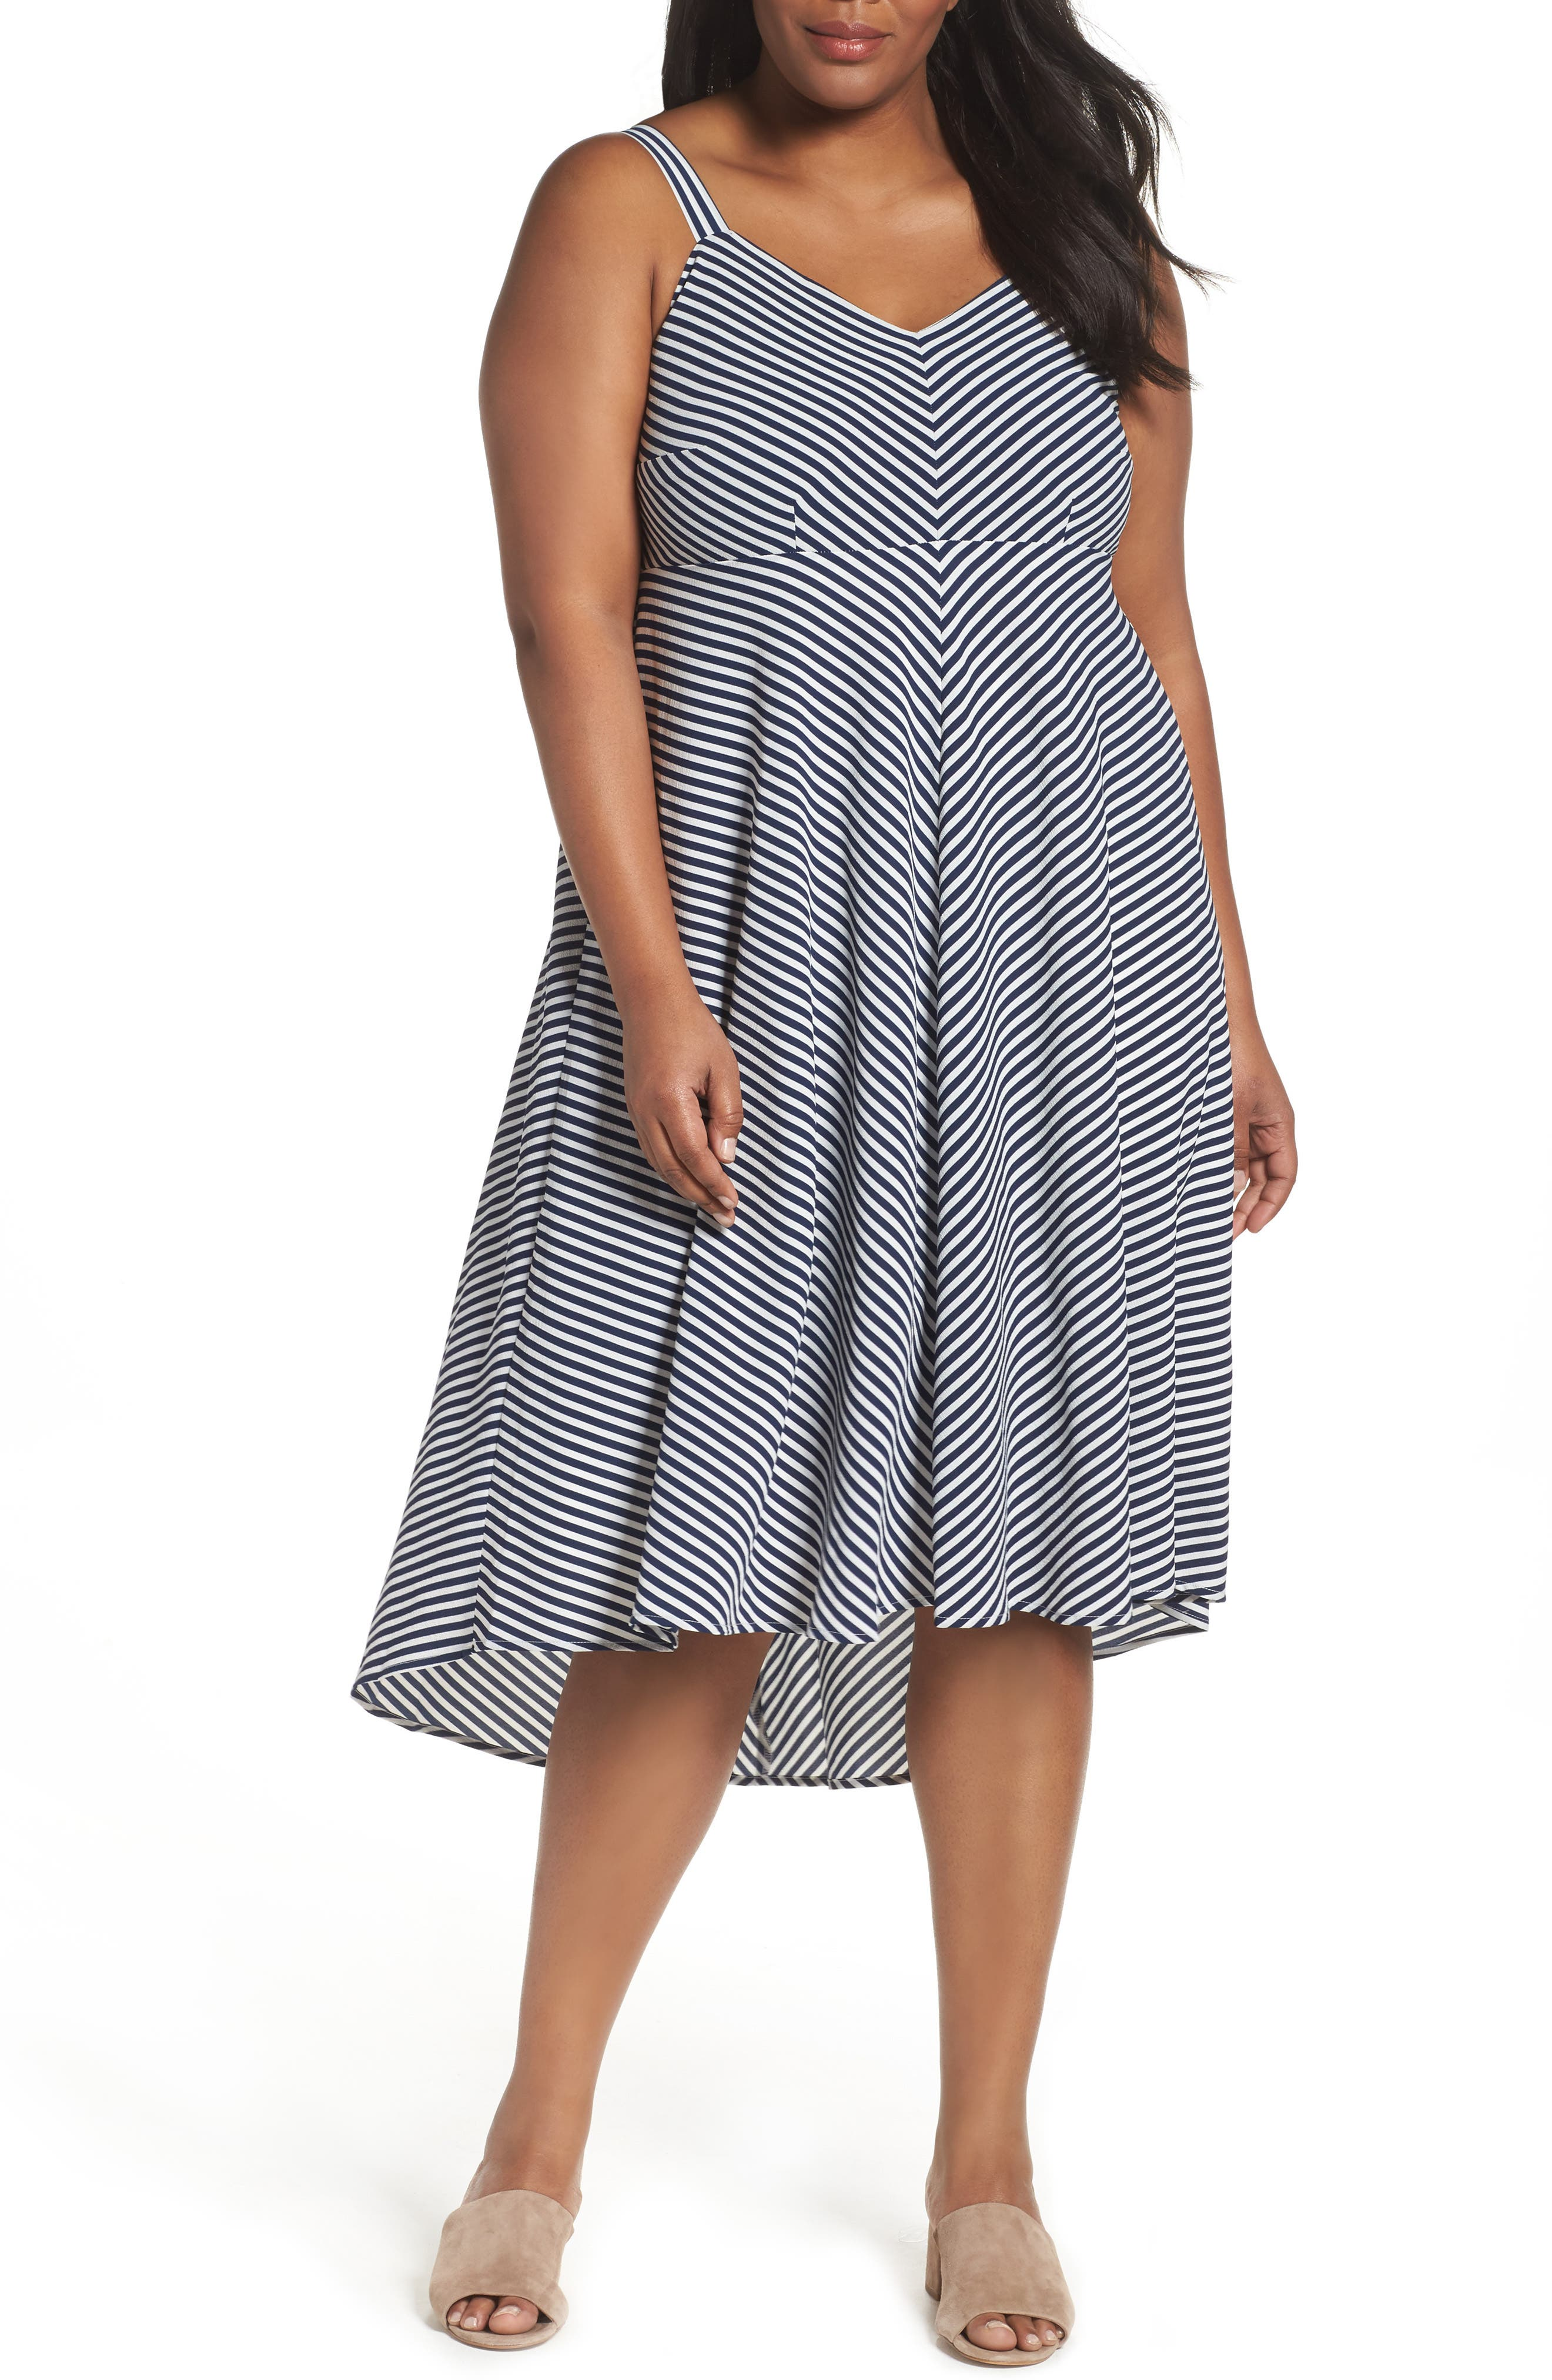 Stripe Midi Sundress,                             Main thumbnail 1, color,                             Navy/ Cream